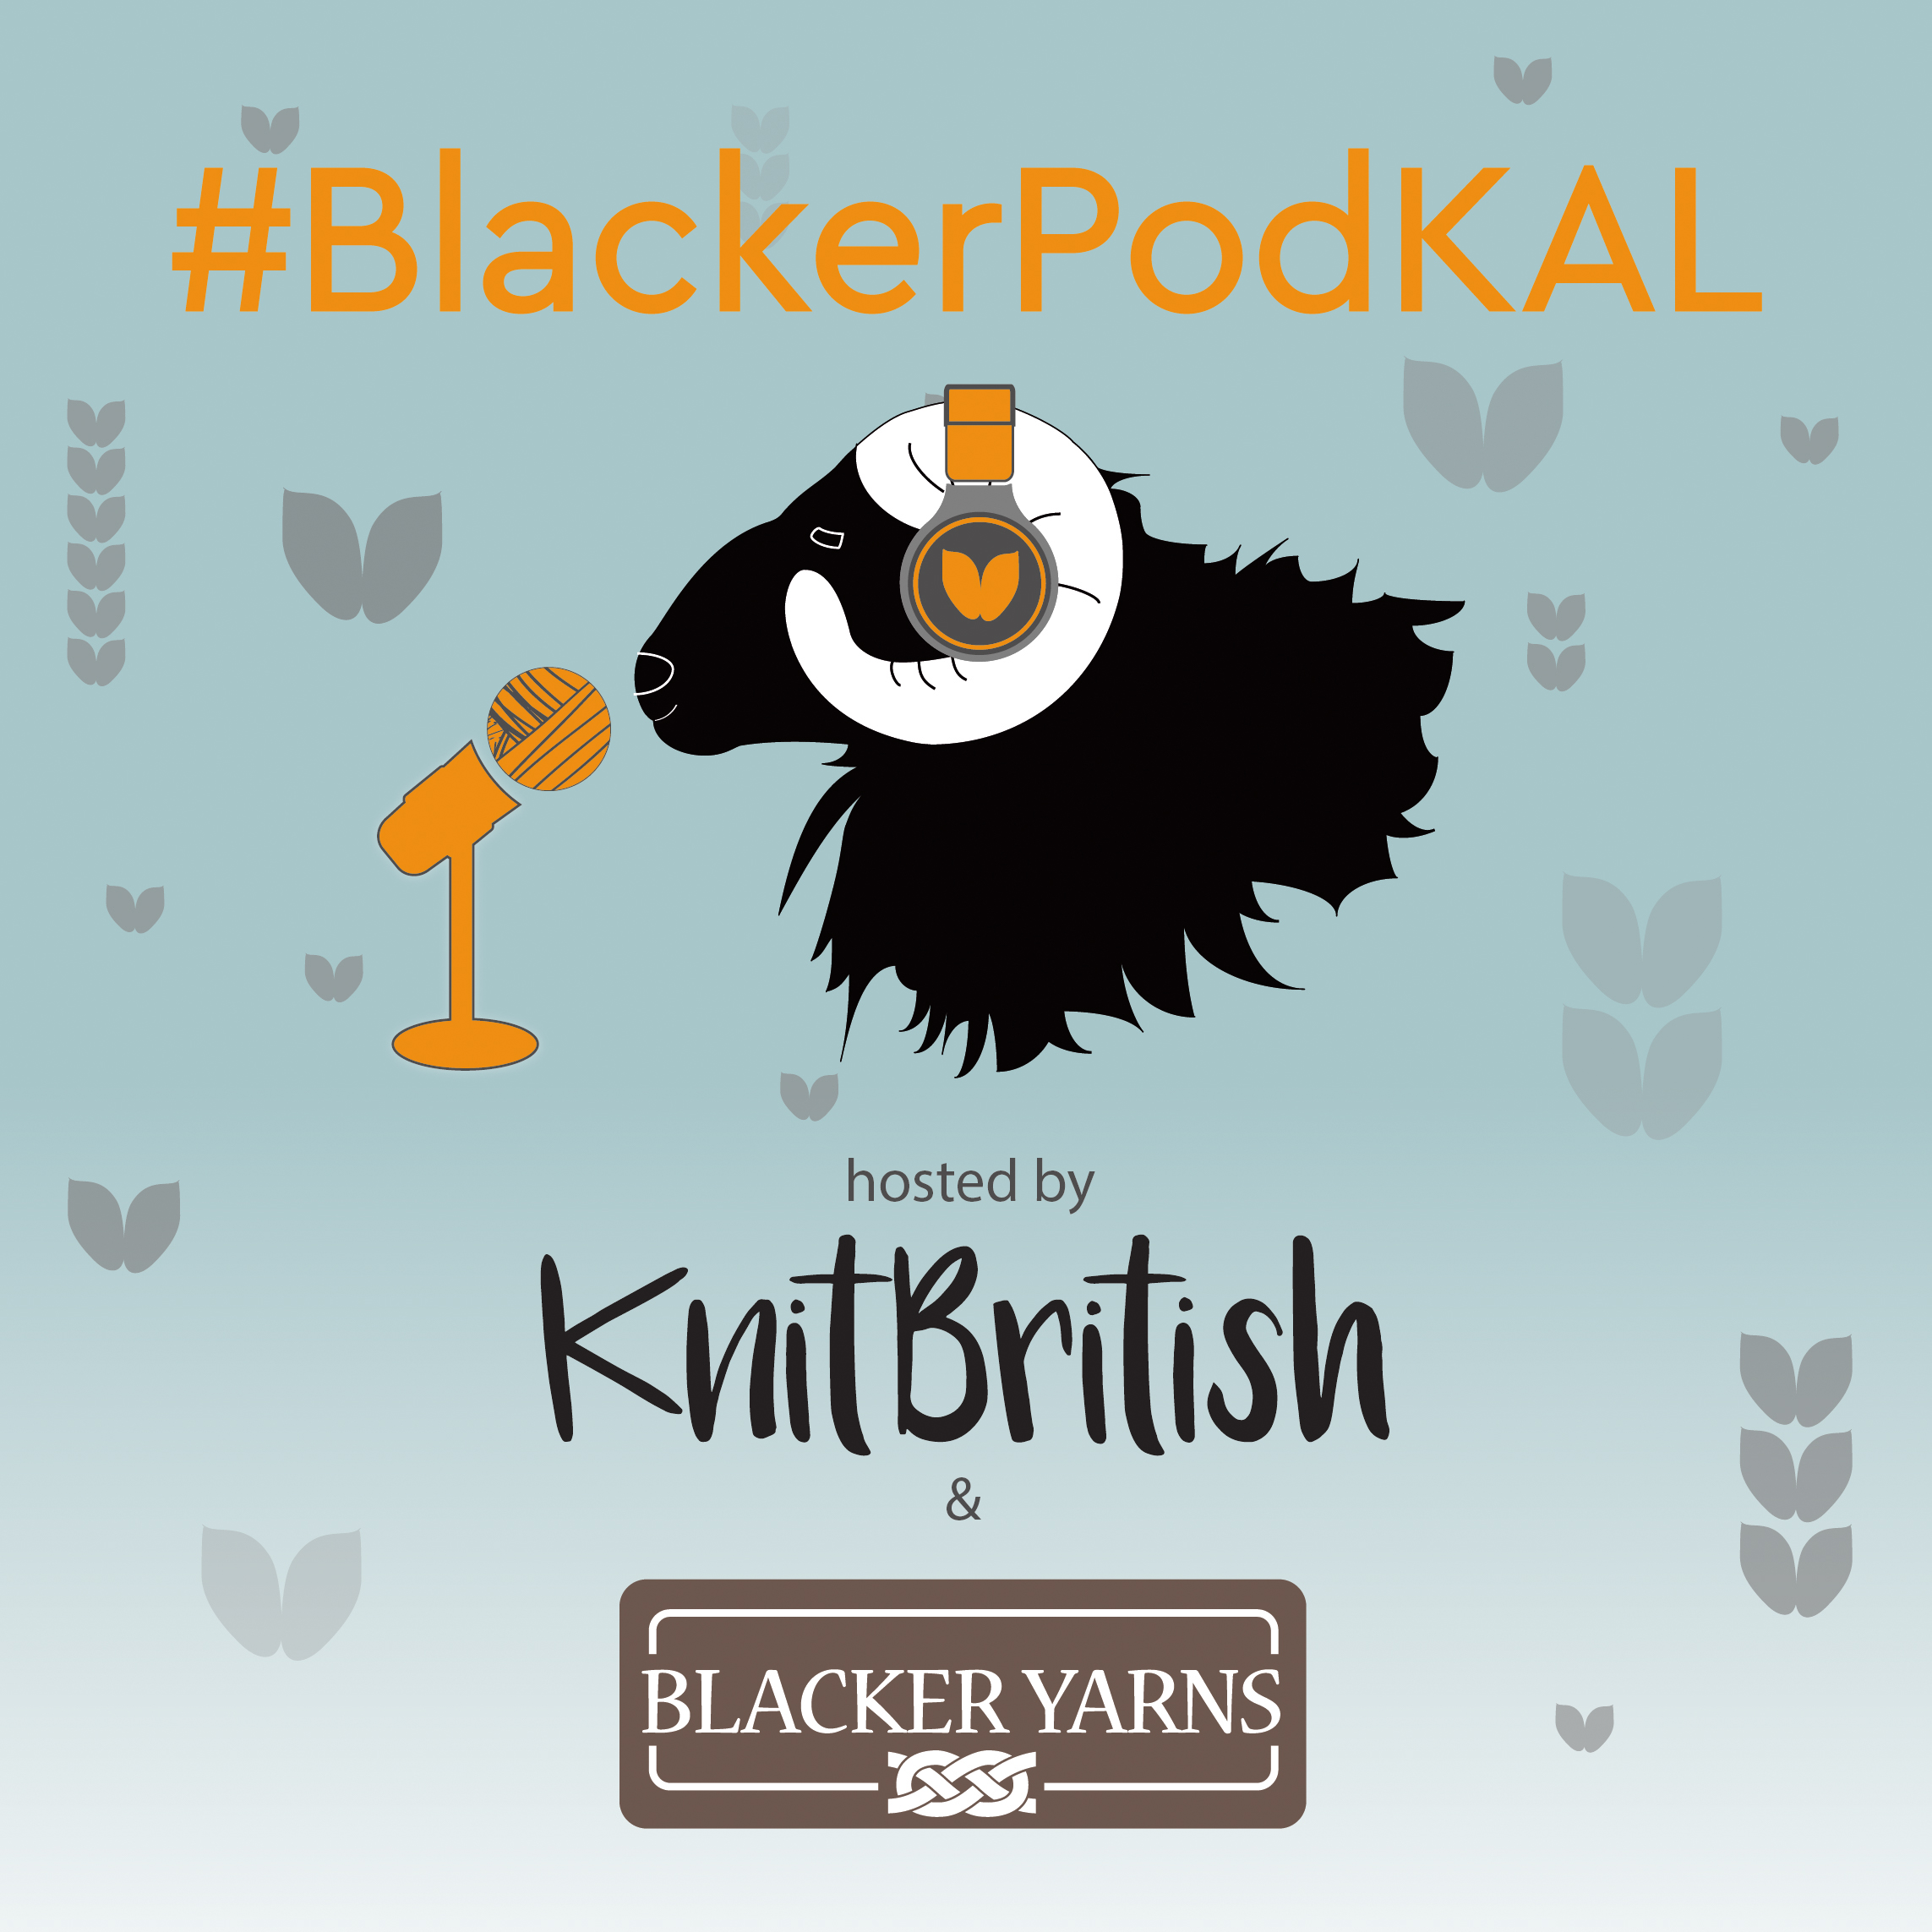 We're casting on for the #BlackerPodKAL as Team Yarn in the City!